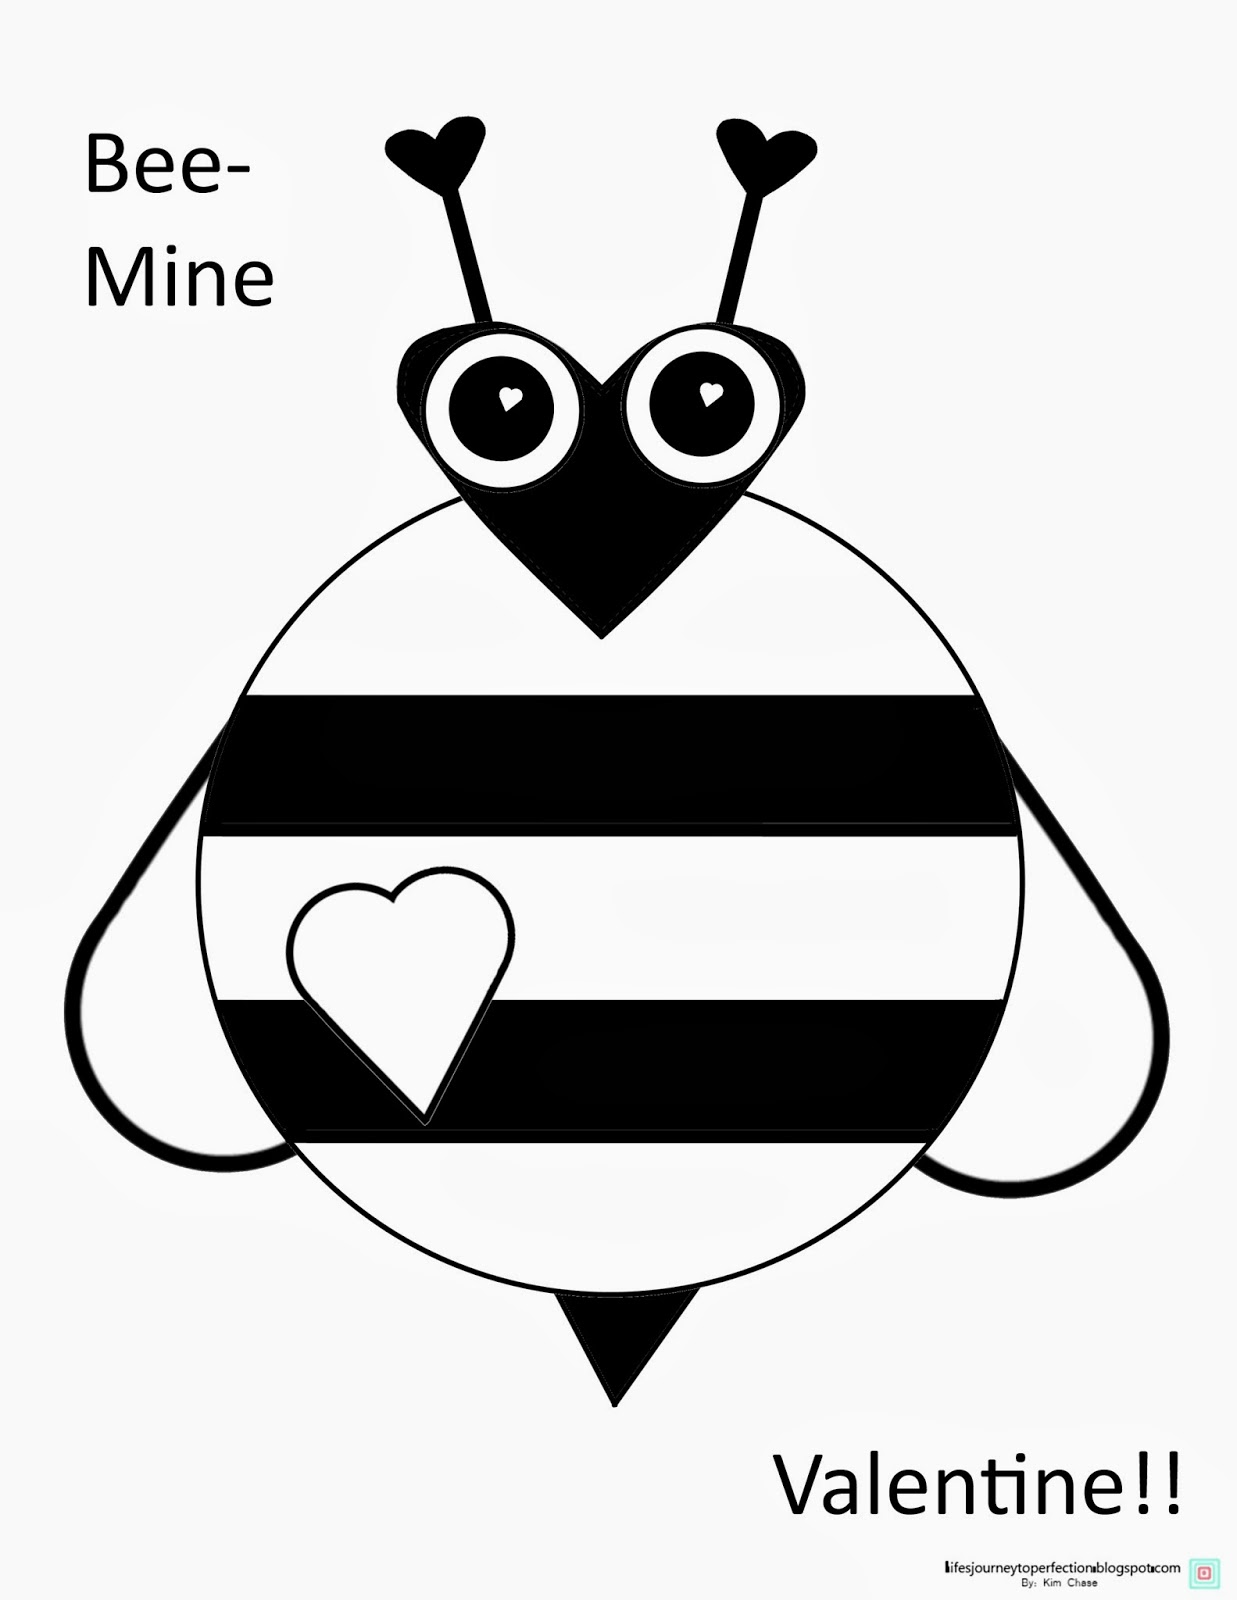 Life S Journey To Perfection Valentine S Day Bee Craft Printable